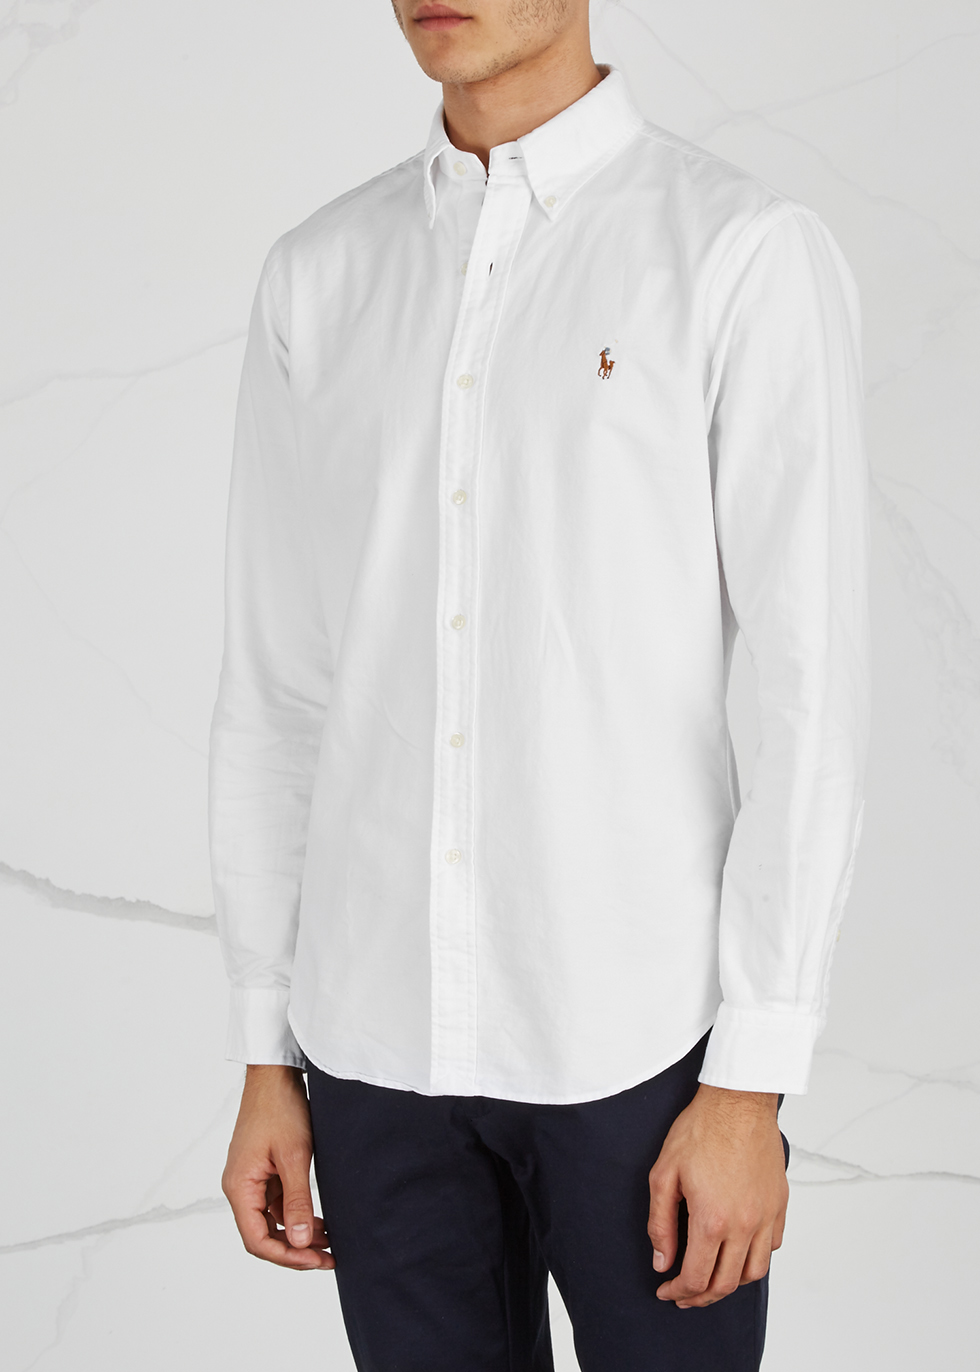 White slim piqué cotton Oxford shirt - Polo Ralph Lauren